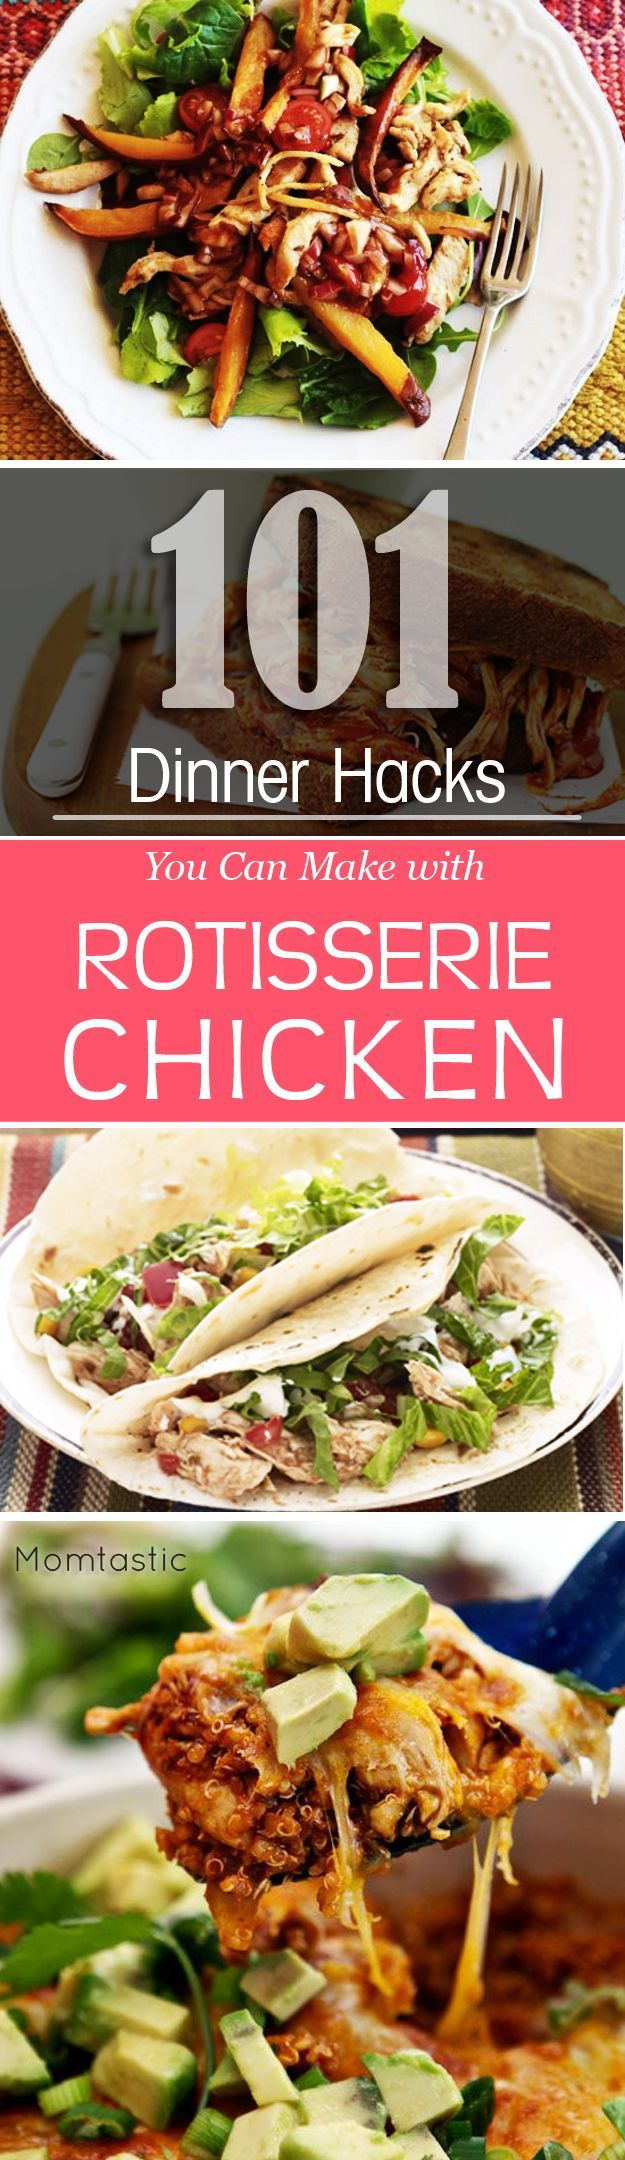 101 Easy Rotisserie Chicken Recipes